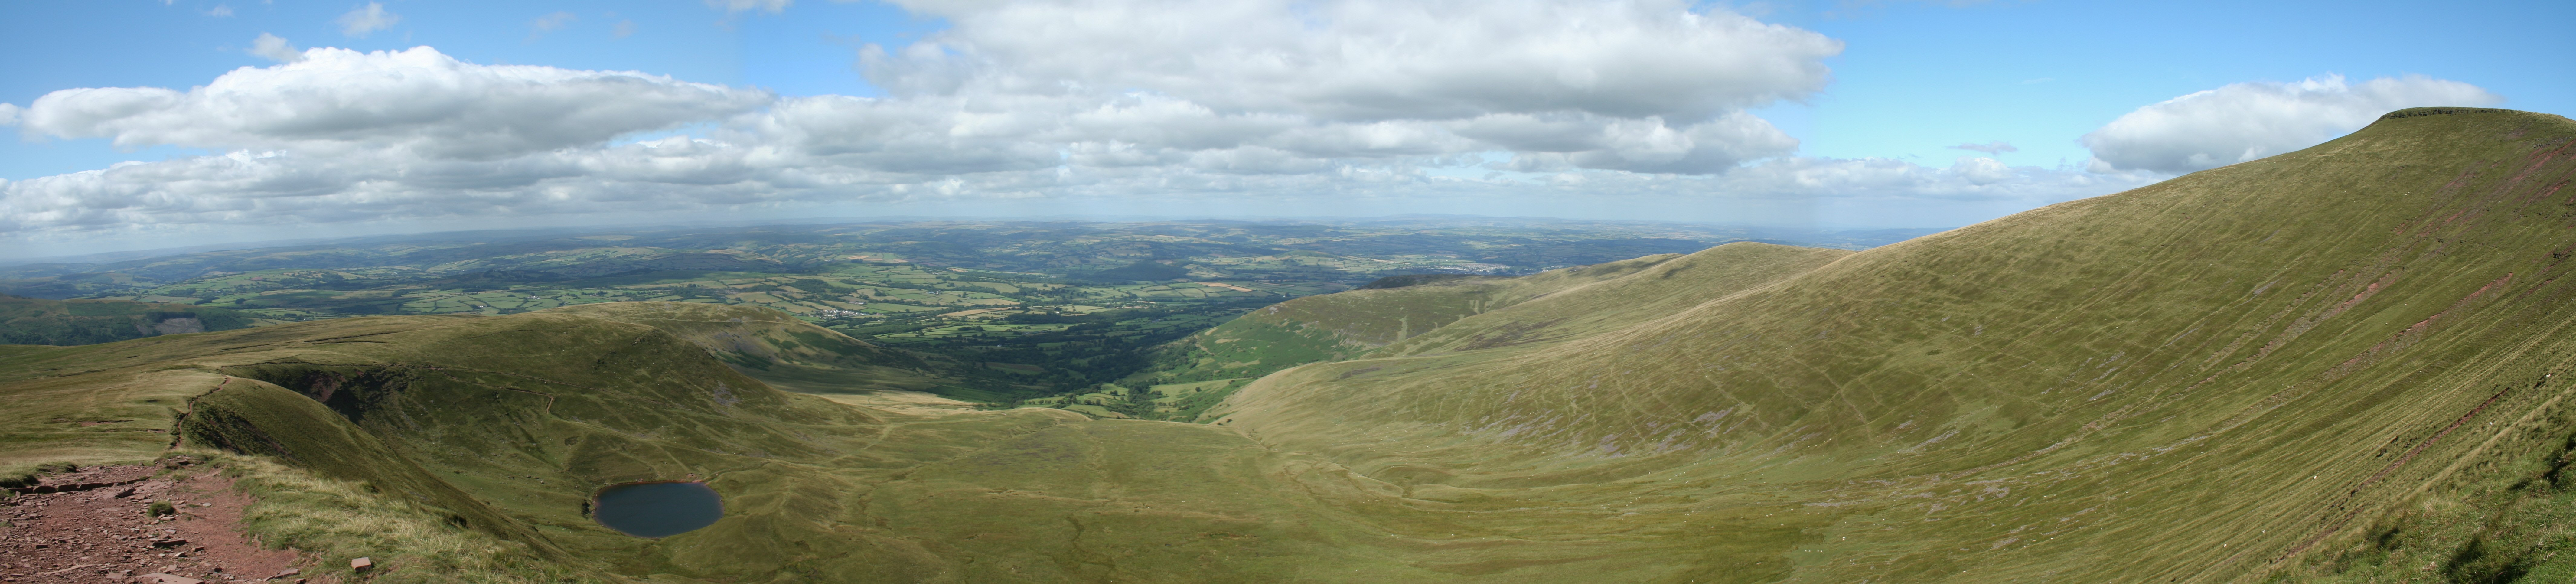 Brecon Beacons deaths